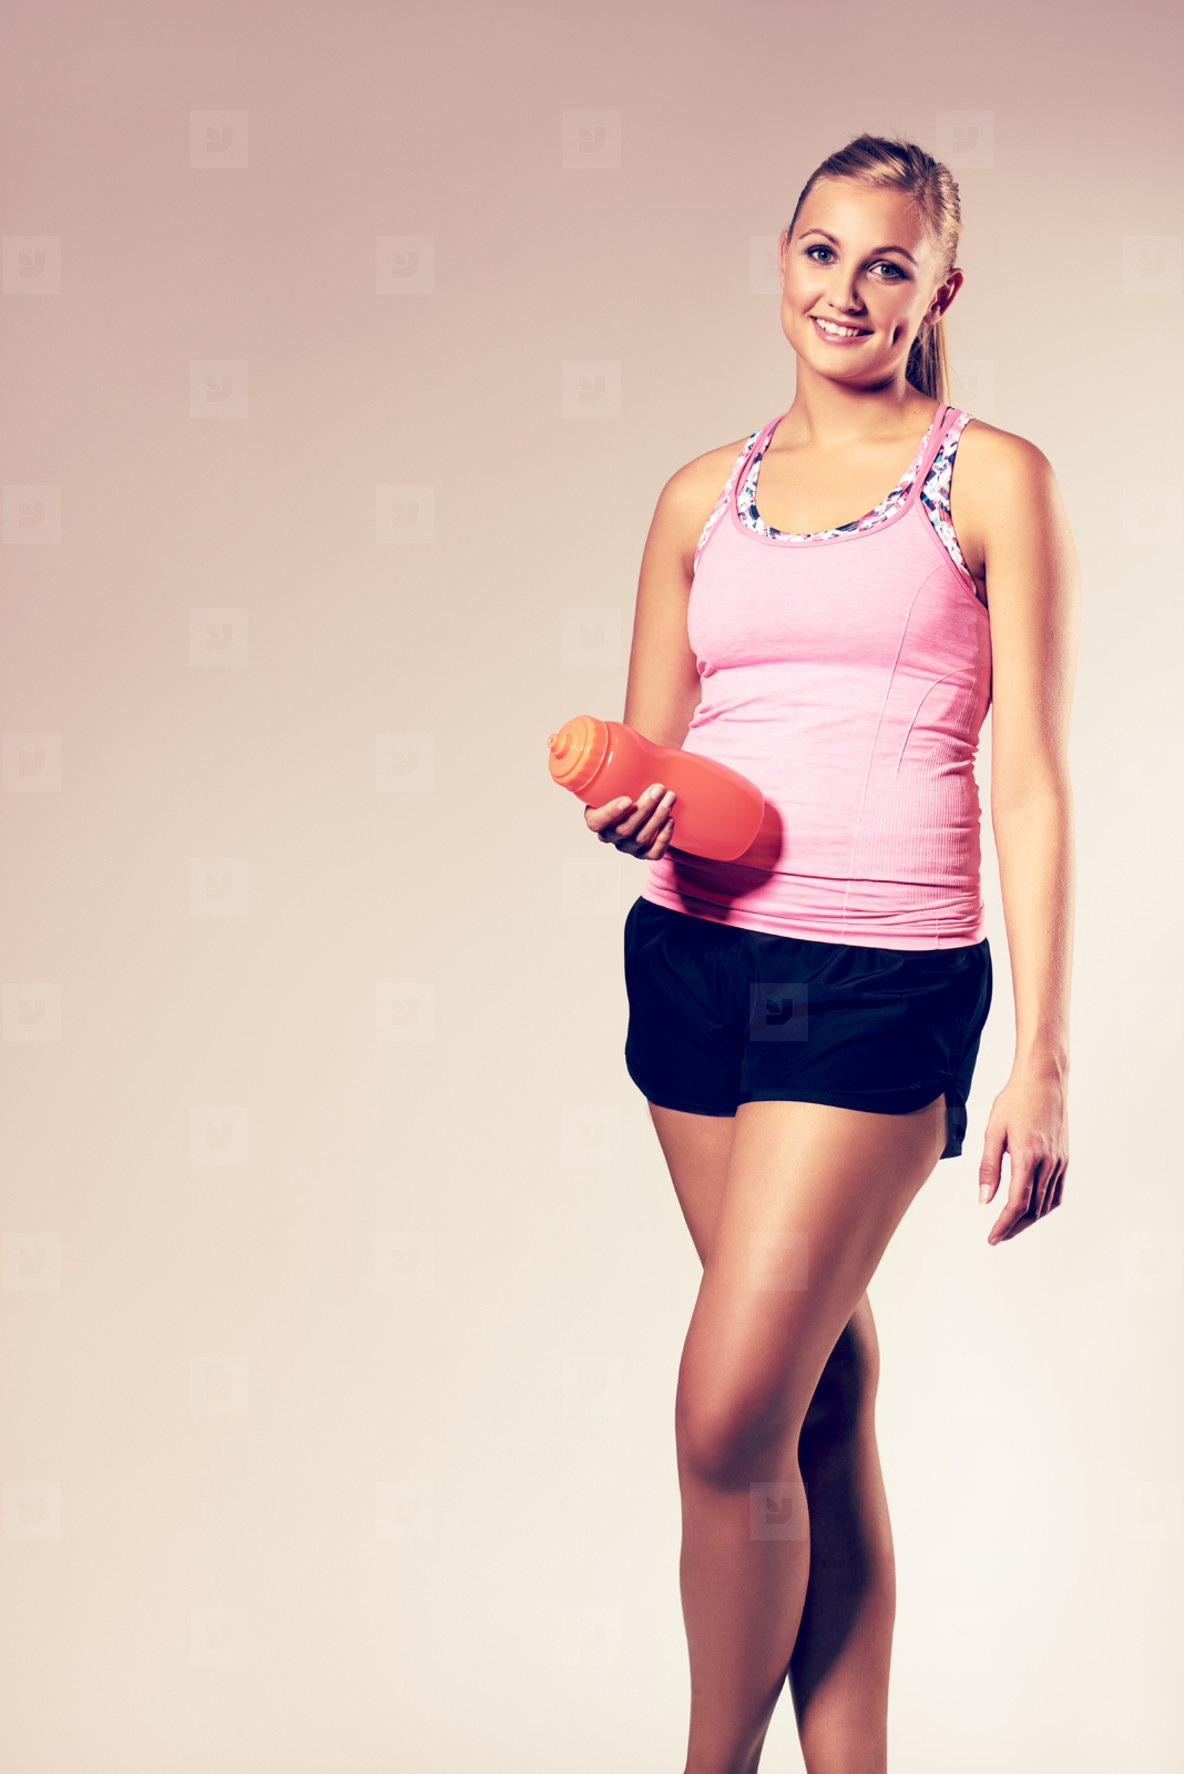 Woman wearing workout clothes holding a water bottle